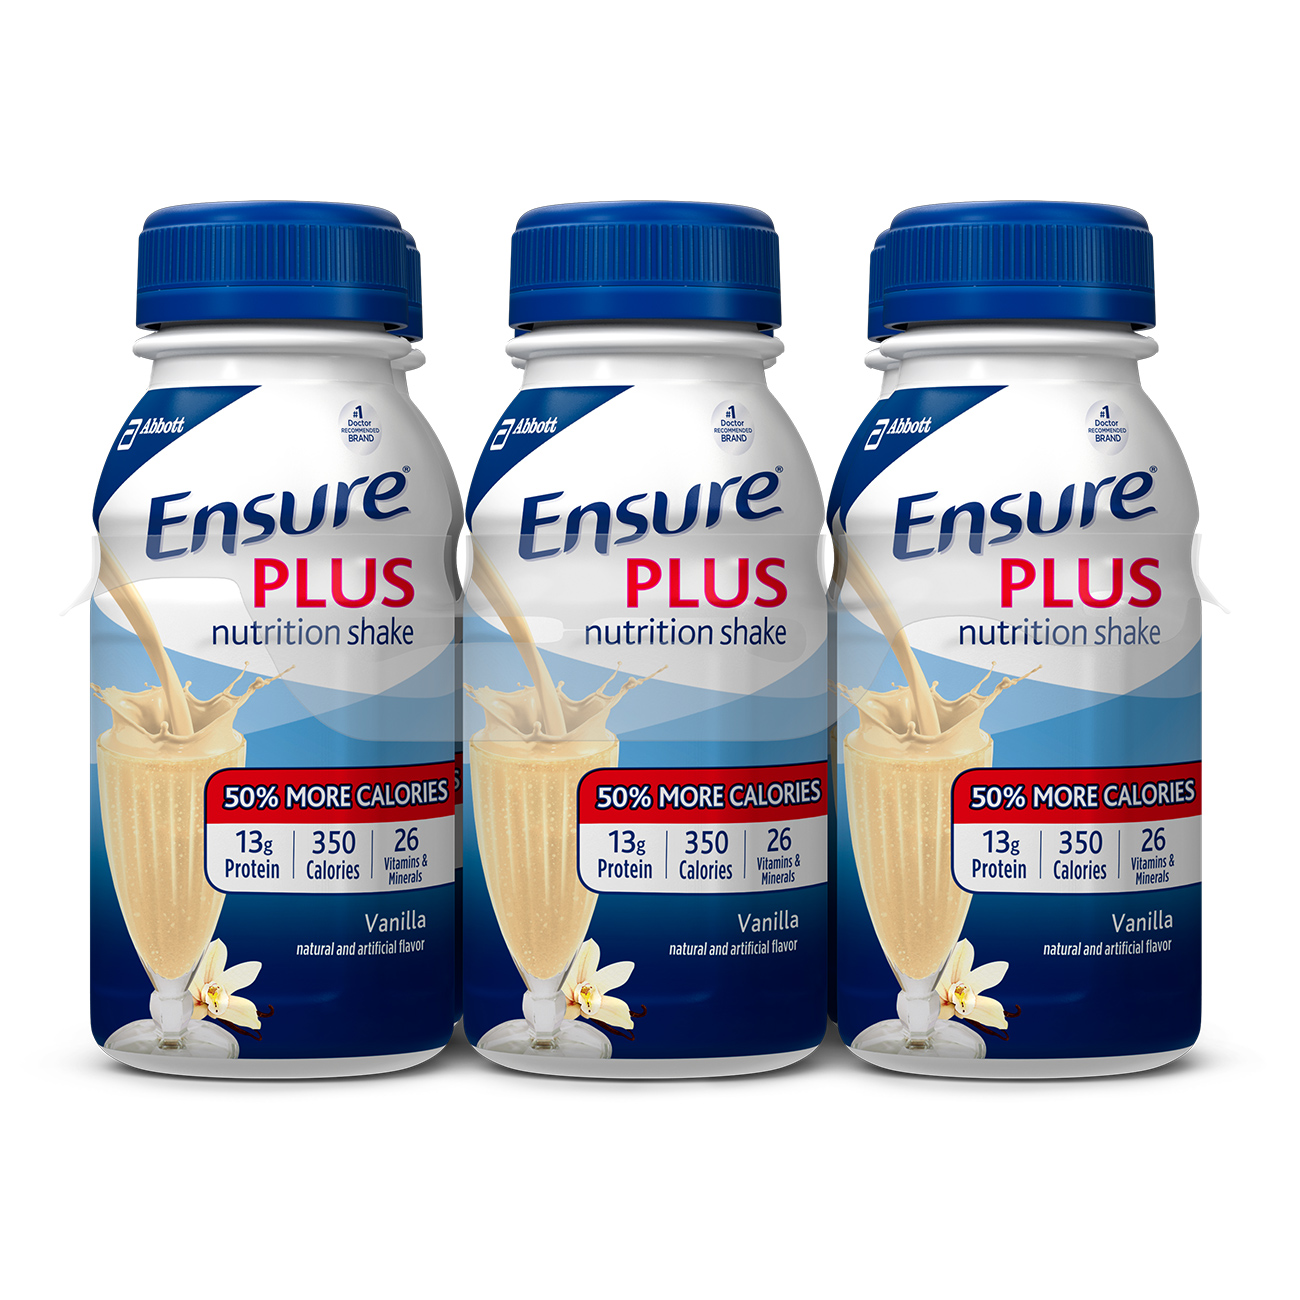 Ensure Plus Nutrition Shake with 13 grams of high-quality protein, Meal Replacement Shakes, Vanilla, 8 fl oz, 6 count